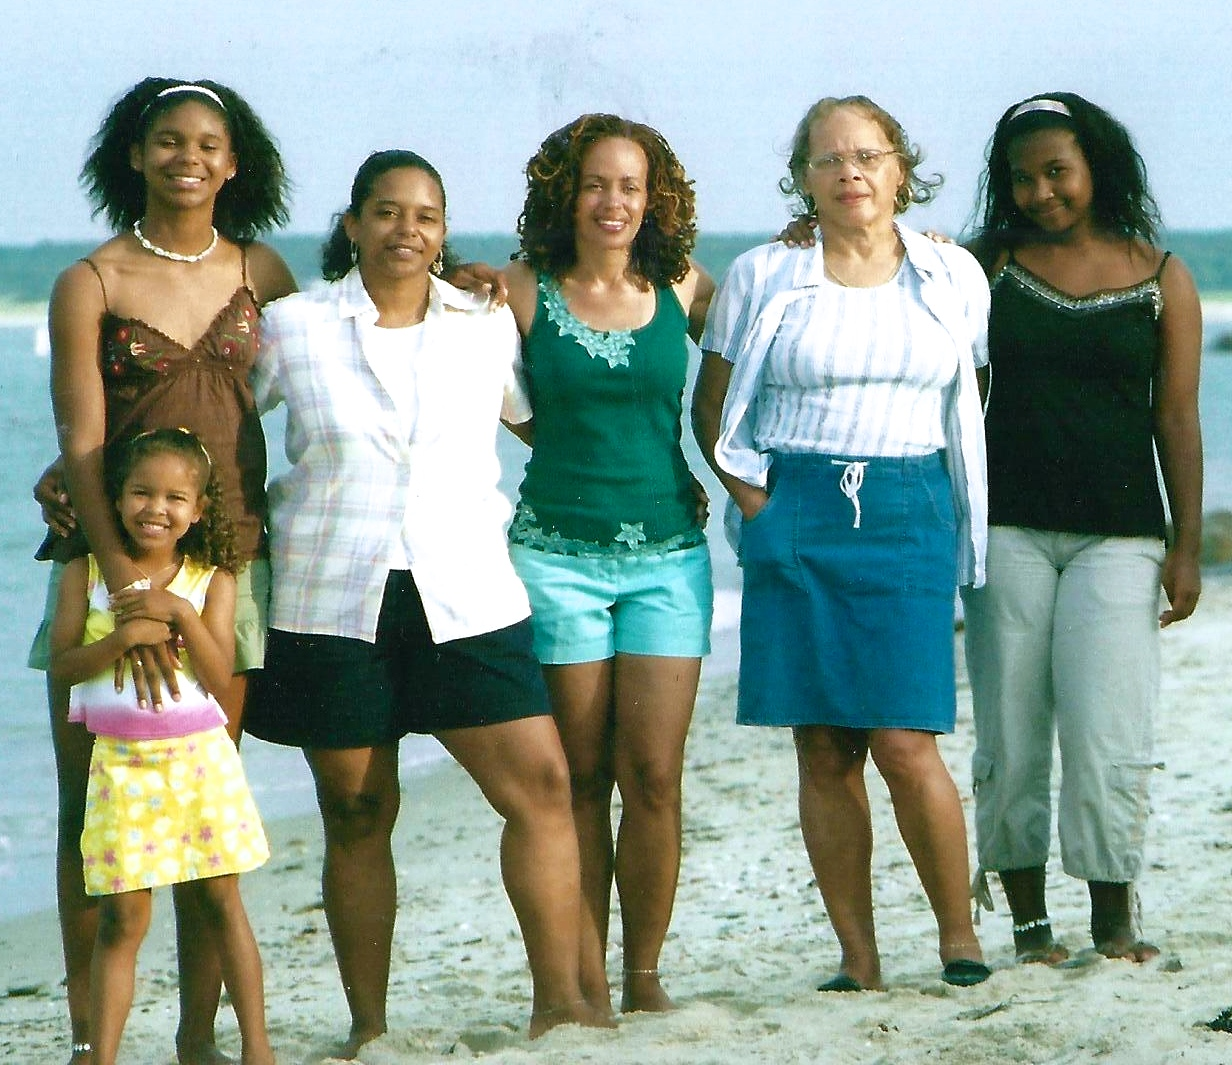 With my sister Terri and the girls, 2005.